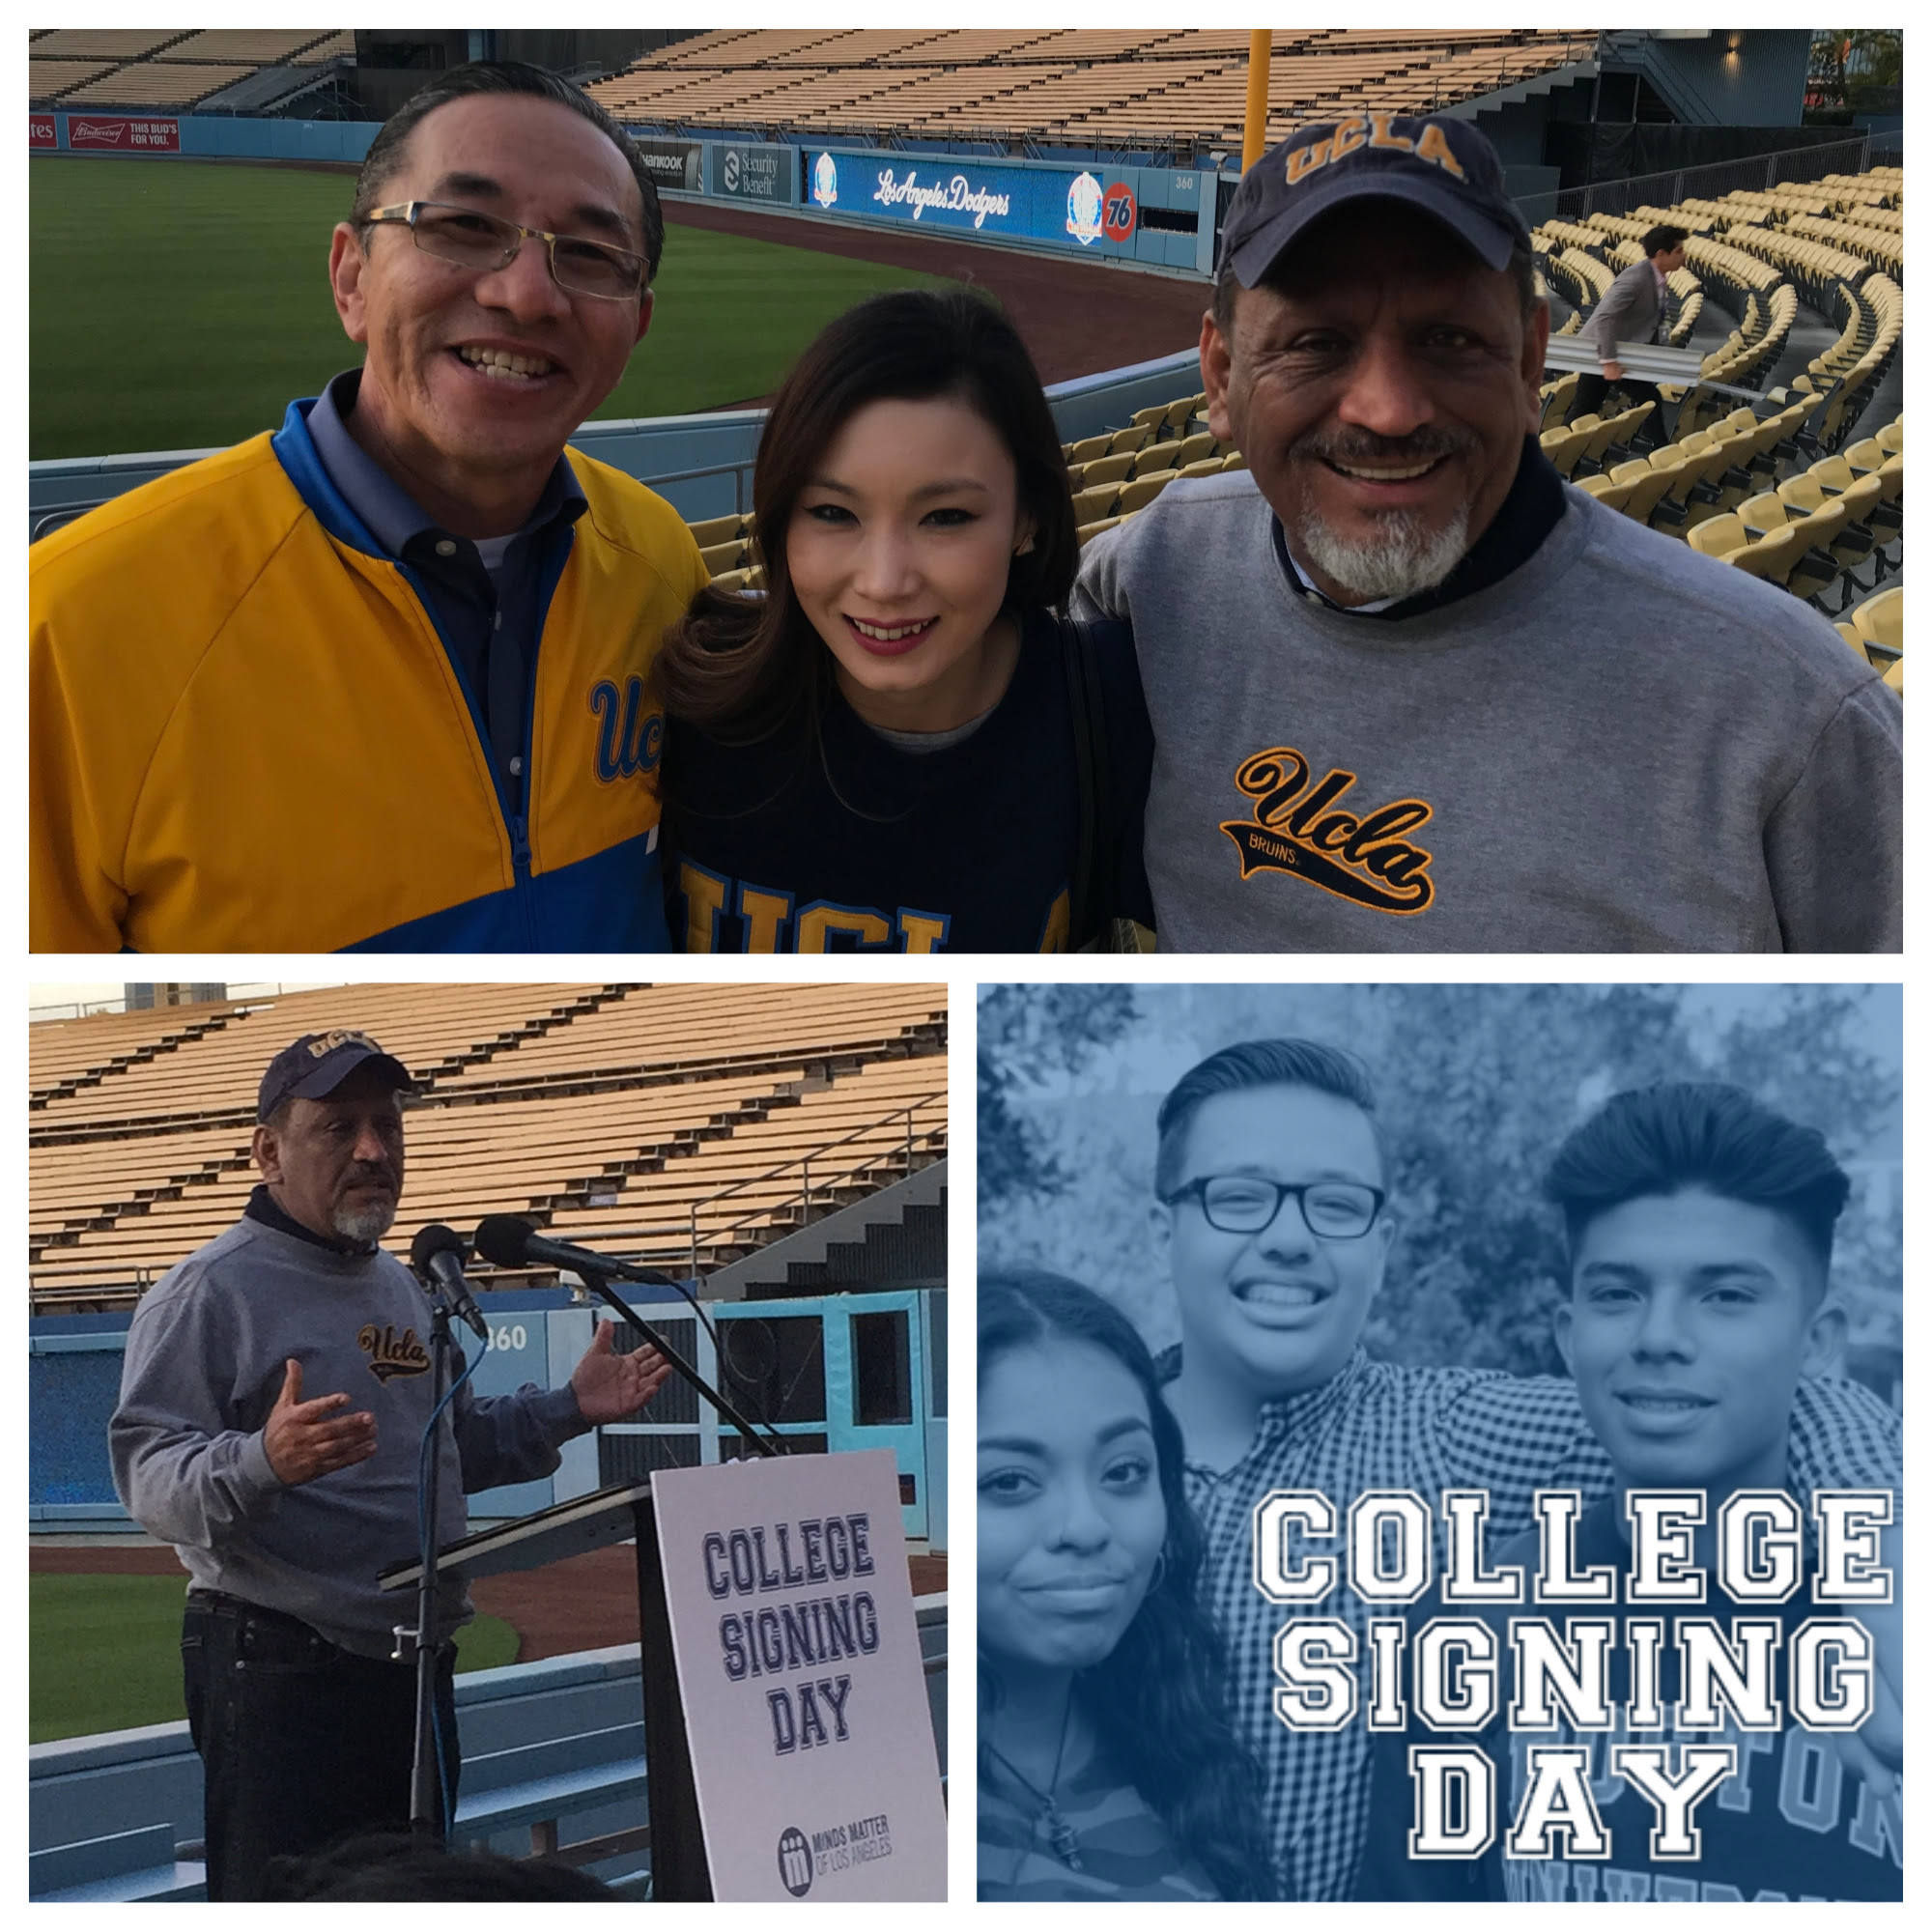 college_signing_day.jpg